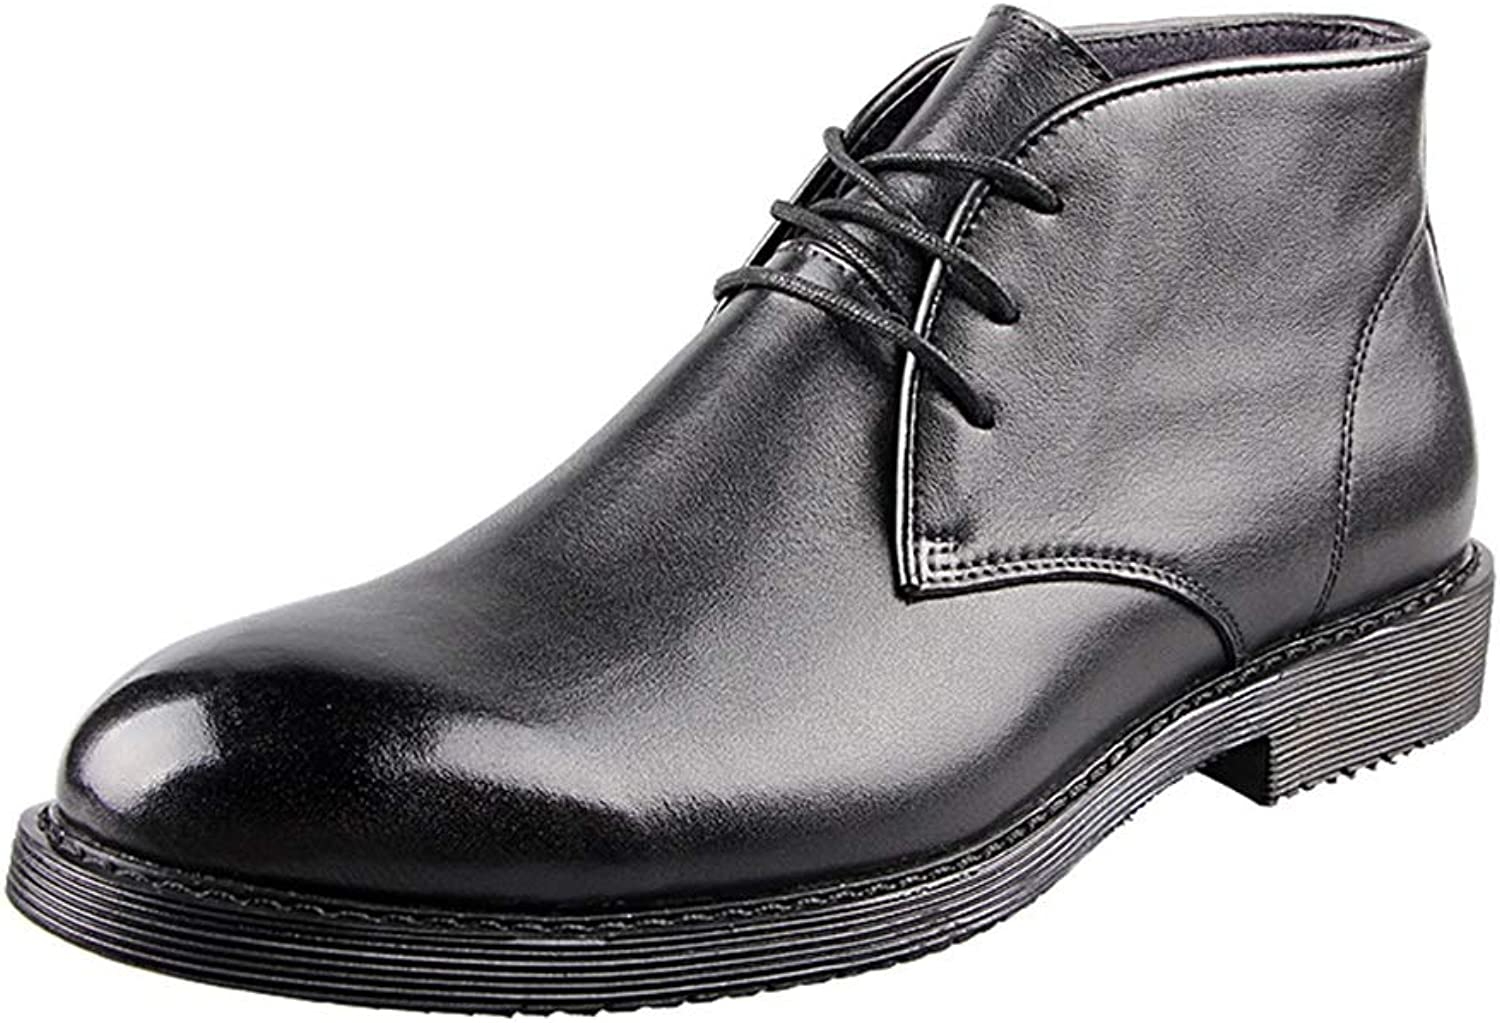 shoes Boots Leather Dad New Year Retro Business Middle-Aged Middle Help Handmade Martin Boots Leather Cotton Men Plus Cashmere(color  Black)